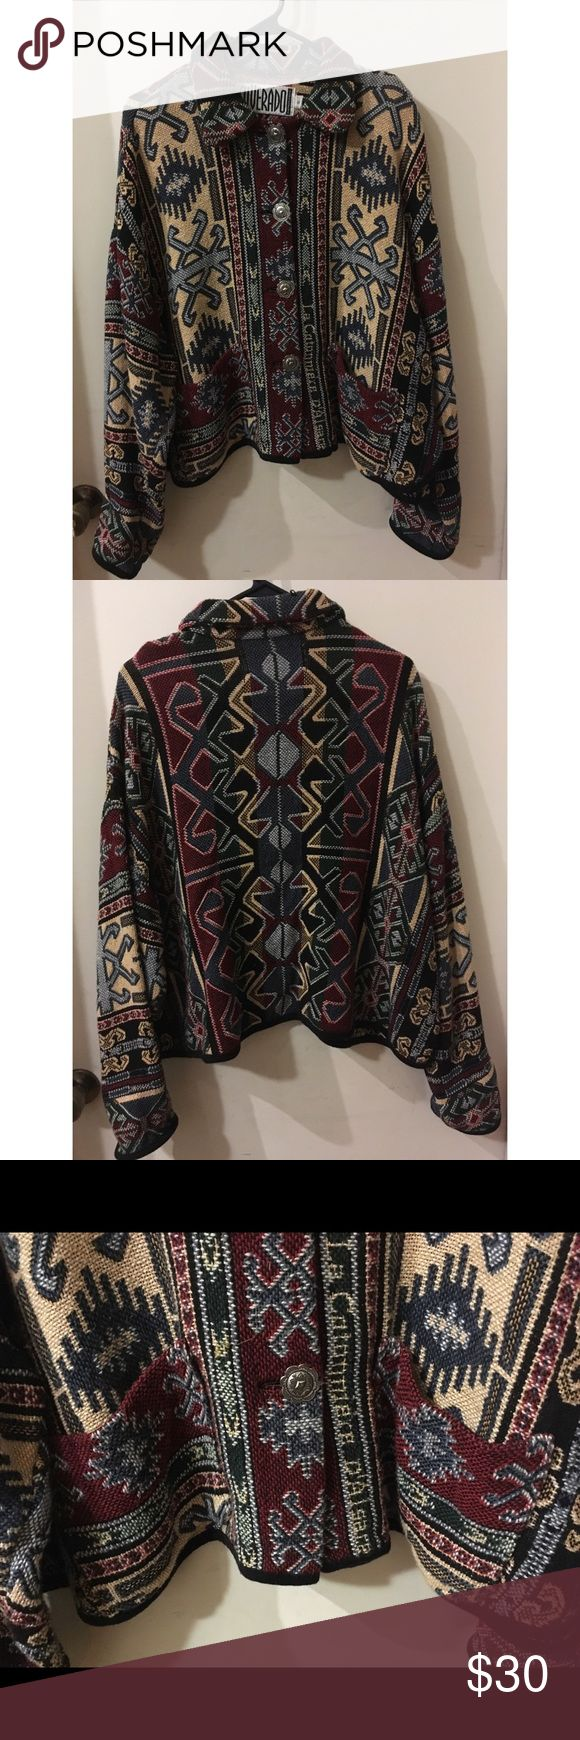 Vintage Tribal Poncho This Vintage button down by Silverado is amazing! So warm and comfy - perfect for any occasion! No wear/no tear. The size is Small that is Vintage sizing - would definitely fit size M/L! 100% cotton! Silverado Jackets & Coats